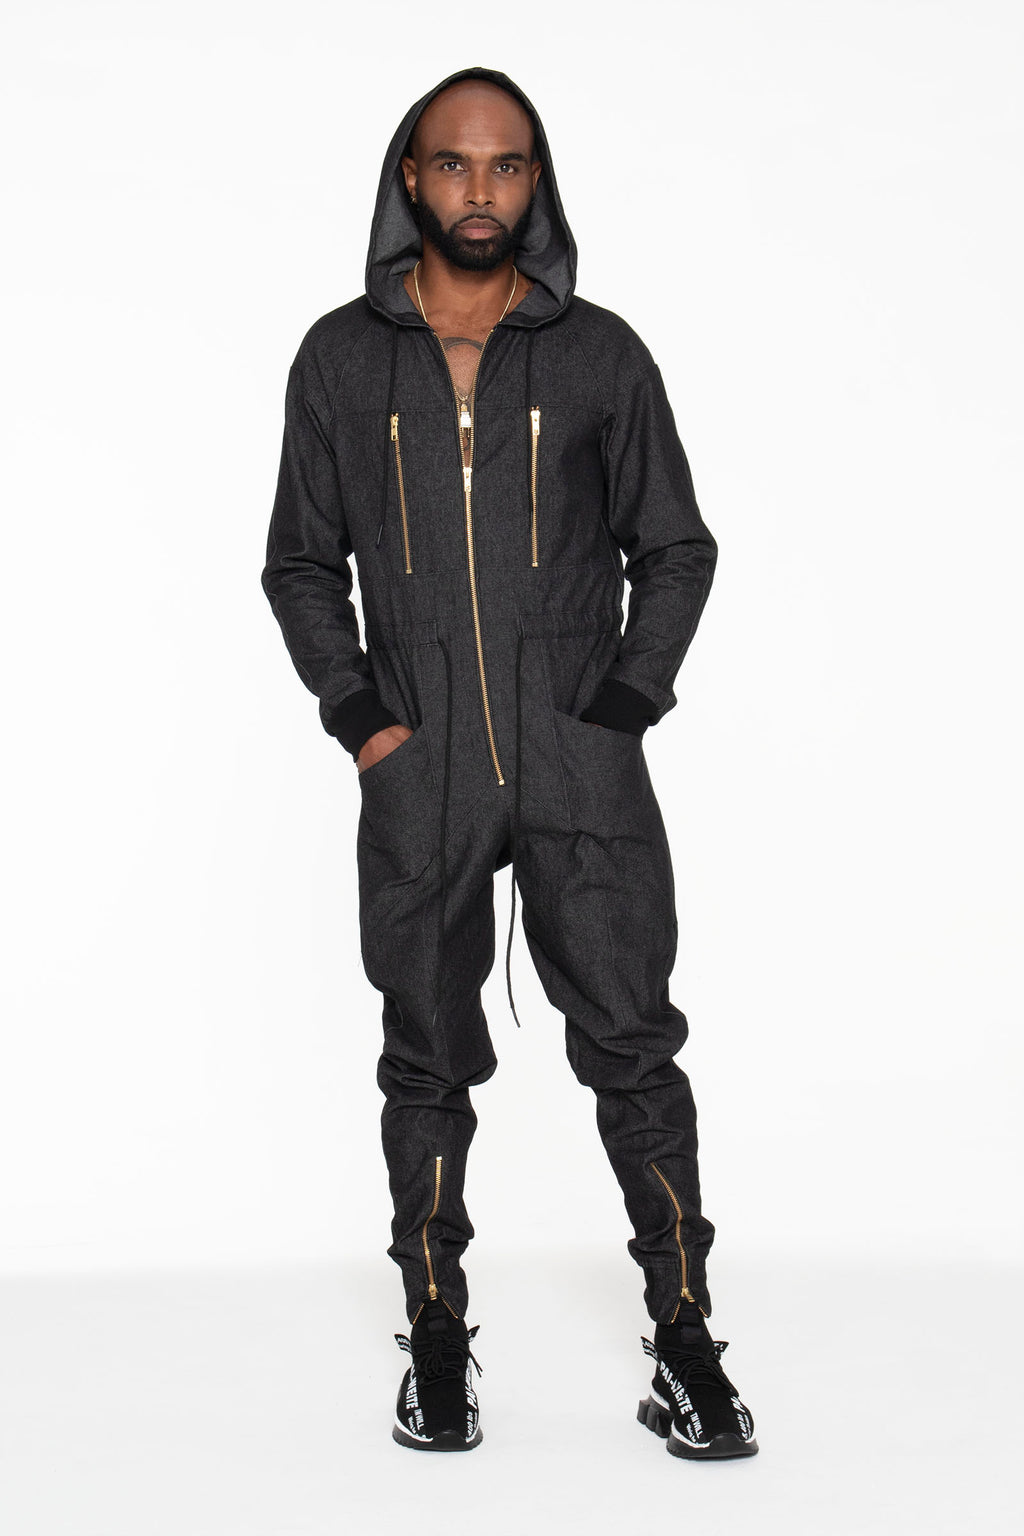 Black Denim Unisex Jumpsuit - pacorogiene